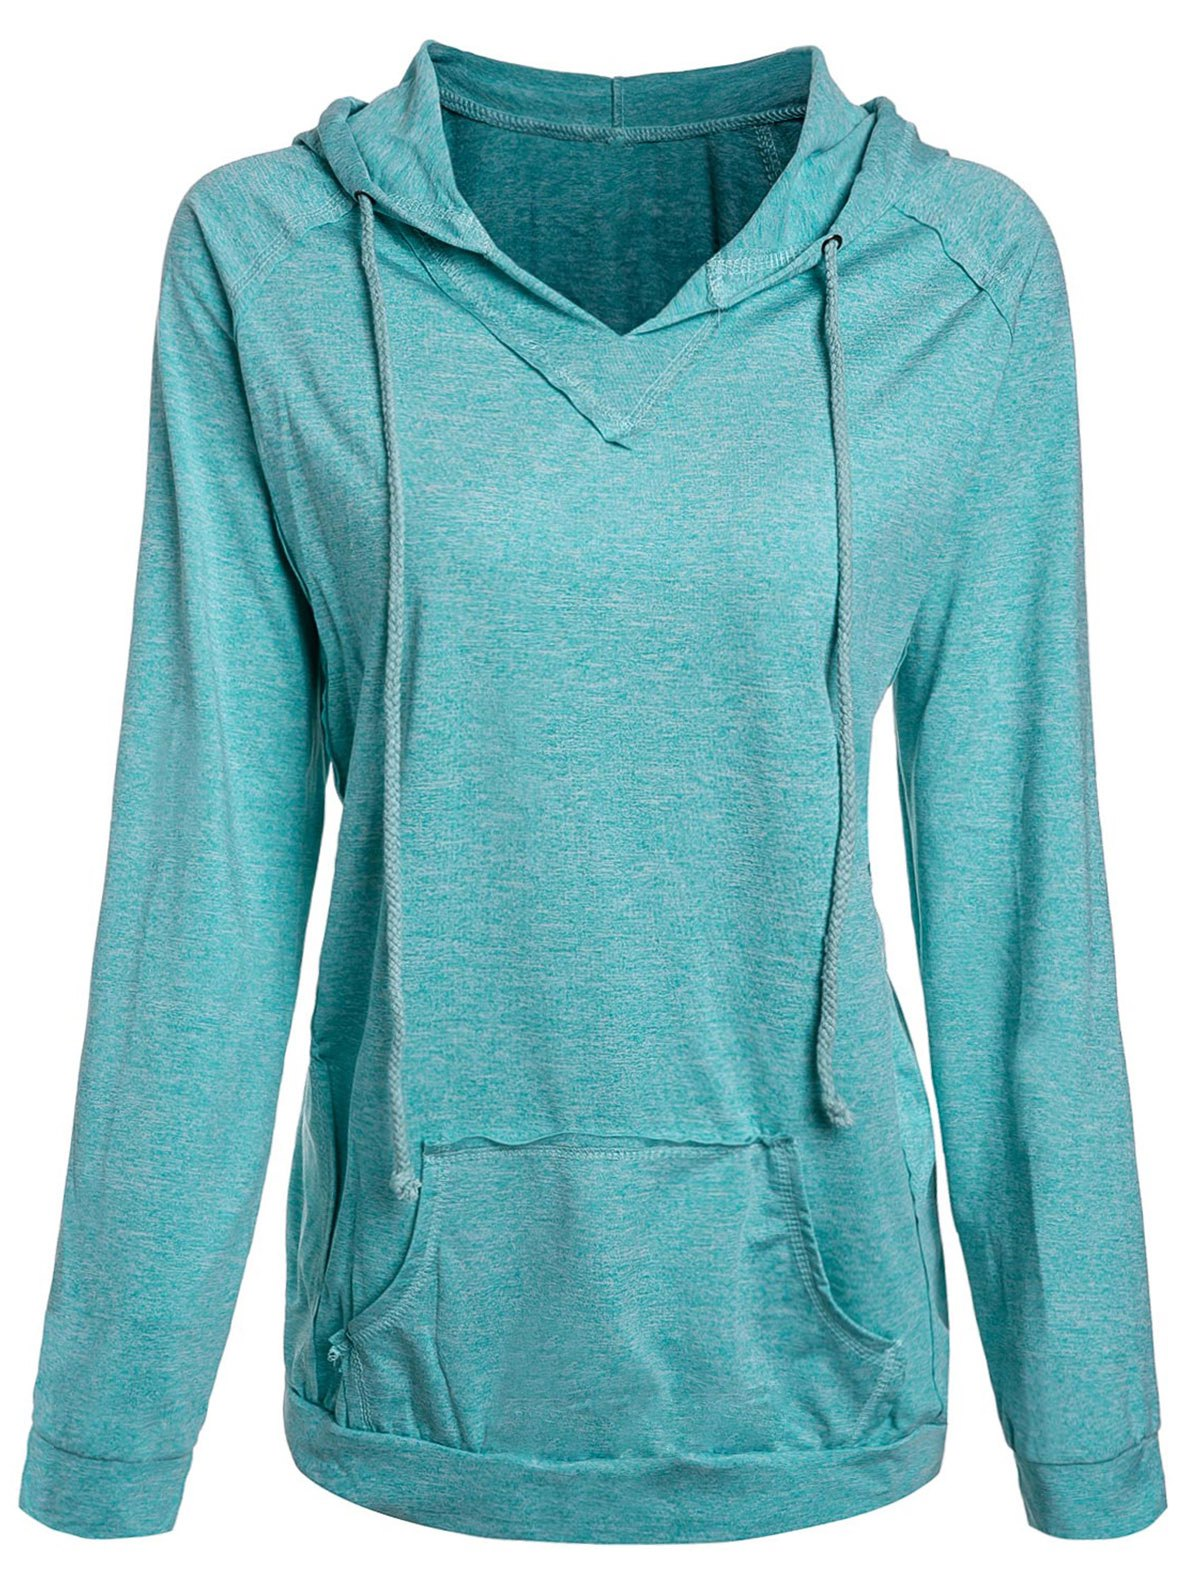 Active Candy Color Hooded Pocket Spliced Pullover Hoodie For Women - MINT GREEN S